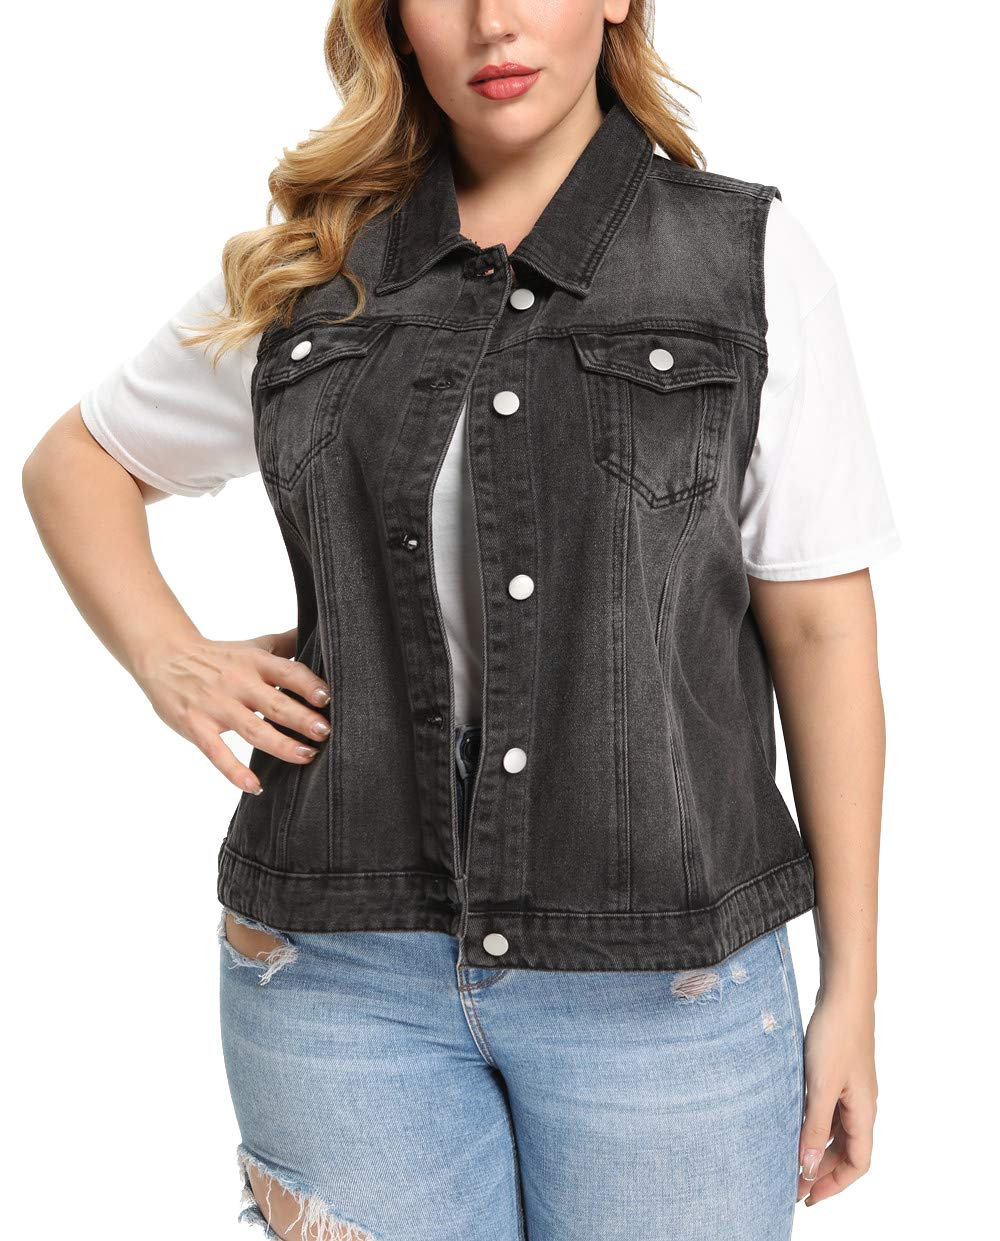 SCOFEEL Womens Denim Vest Button Downs Sleeveless Jacket Plus Size with Pearls